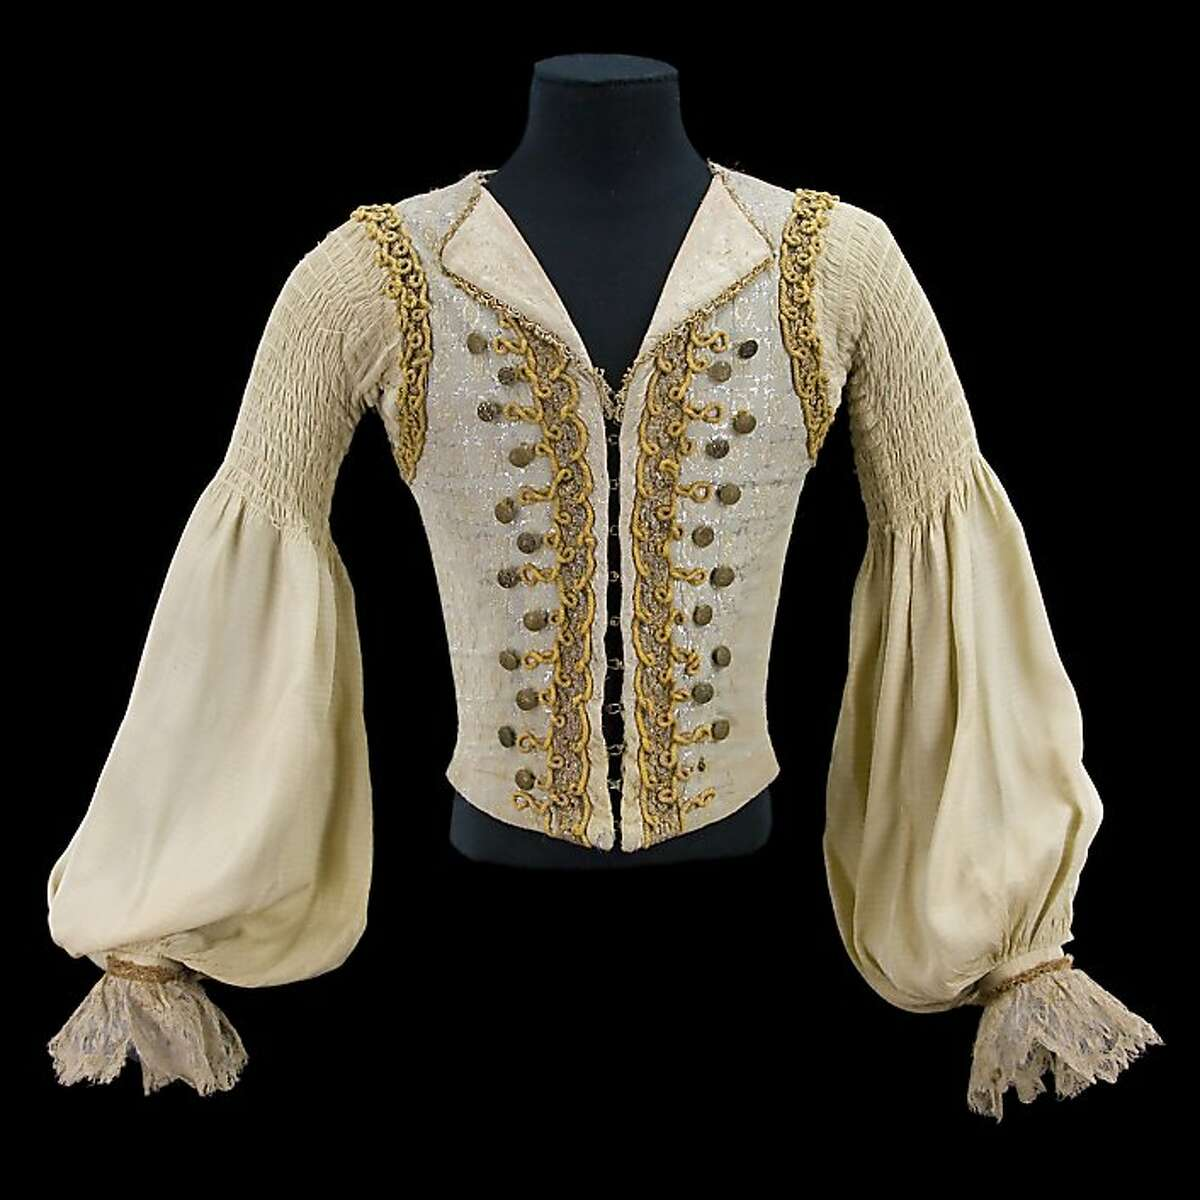 Costume by Nicholas Giorgiadis, doublet for Rudolf Nureyev in the role of Prince Florimond, Act III, in Sleeping Beauty, Teatro alla Scala, Milan, 1966. Sleeveless gray and silver waistcoat trimmed with gold lace, yellow braid, and gold filigree buttons; white false shirt with pleated sleeves and lace cuffs. Collection CNCS/Rudolf Nureyev Foundation.